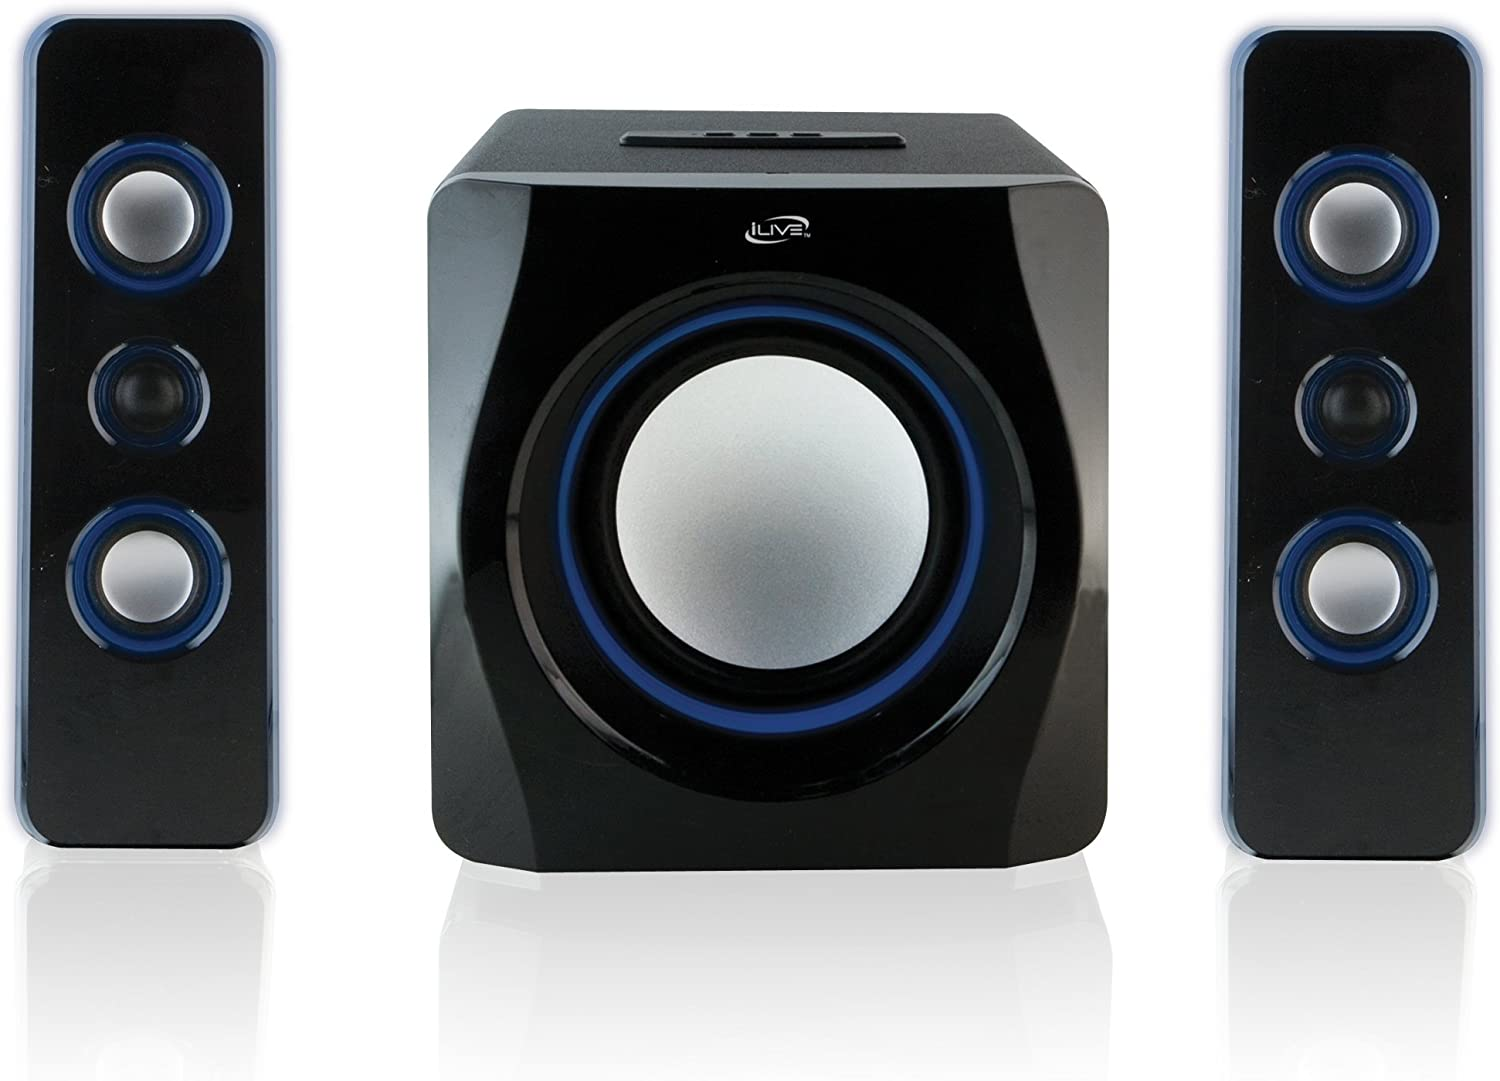 iLive Bluetooth Speaker System with Built-In Subwoofer, 7.28 x 8.86 x 7.28 Inches, Black (iHB23B)